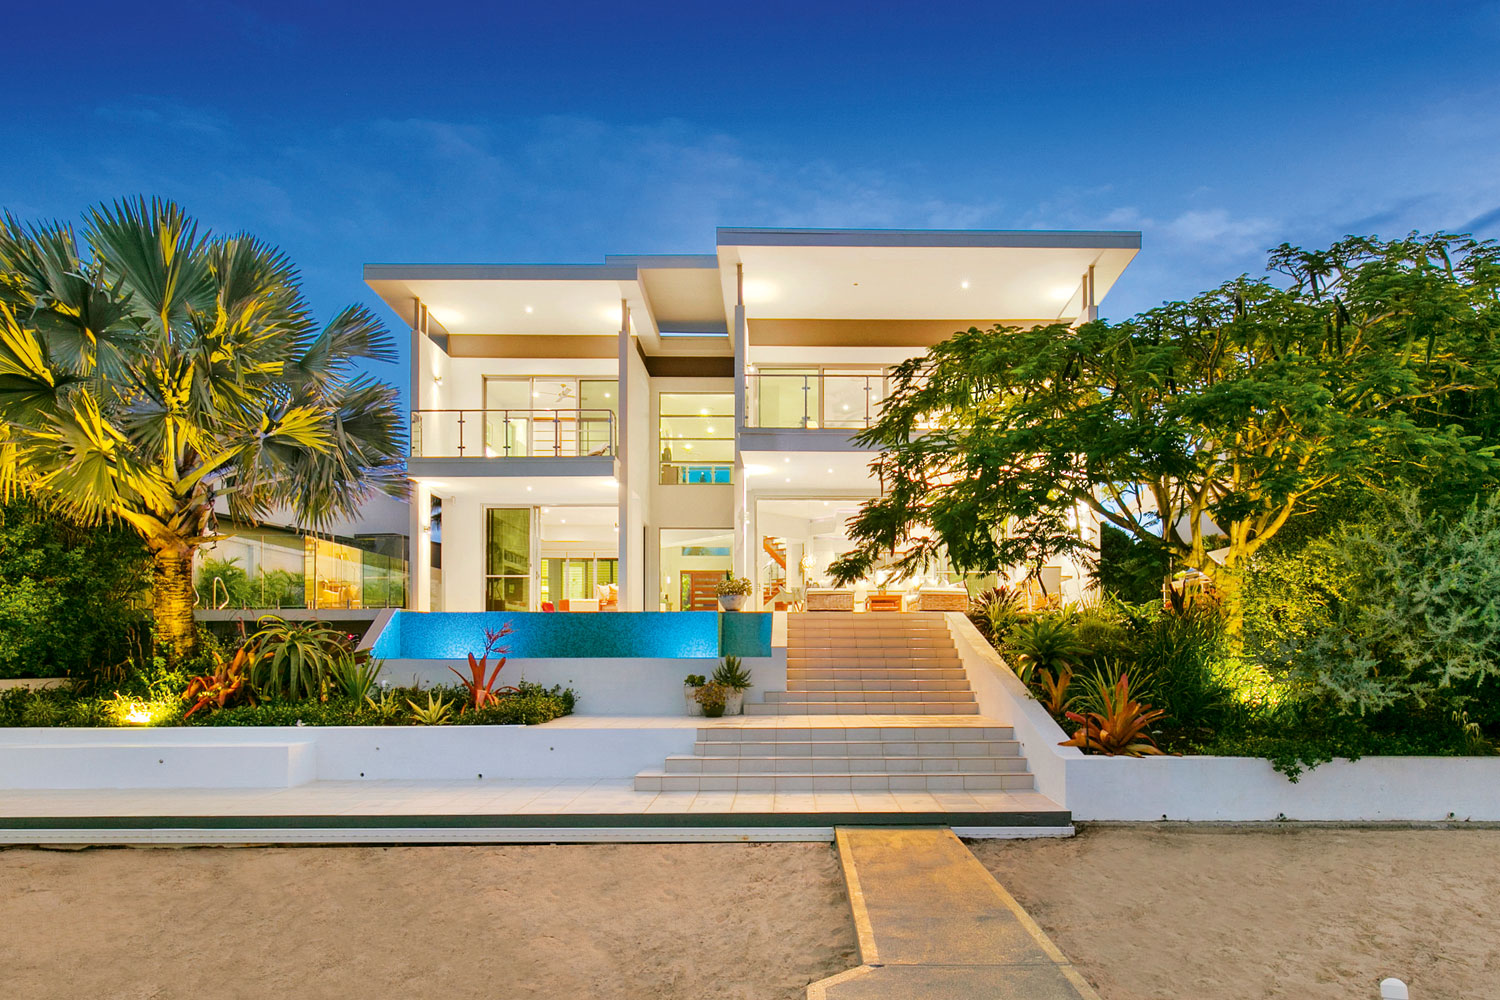 If Thereu0027s One Thing Gold Coast Builders Arenu0027t Afraid To Do, Itu0027s To Build  Big And Bold. Take This Six Bedroom, Two Storey Luxury Waterfront Home.